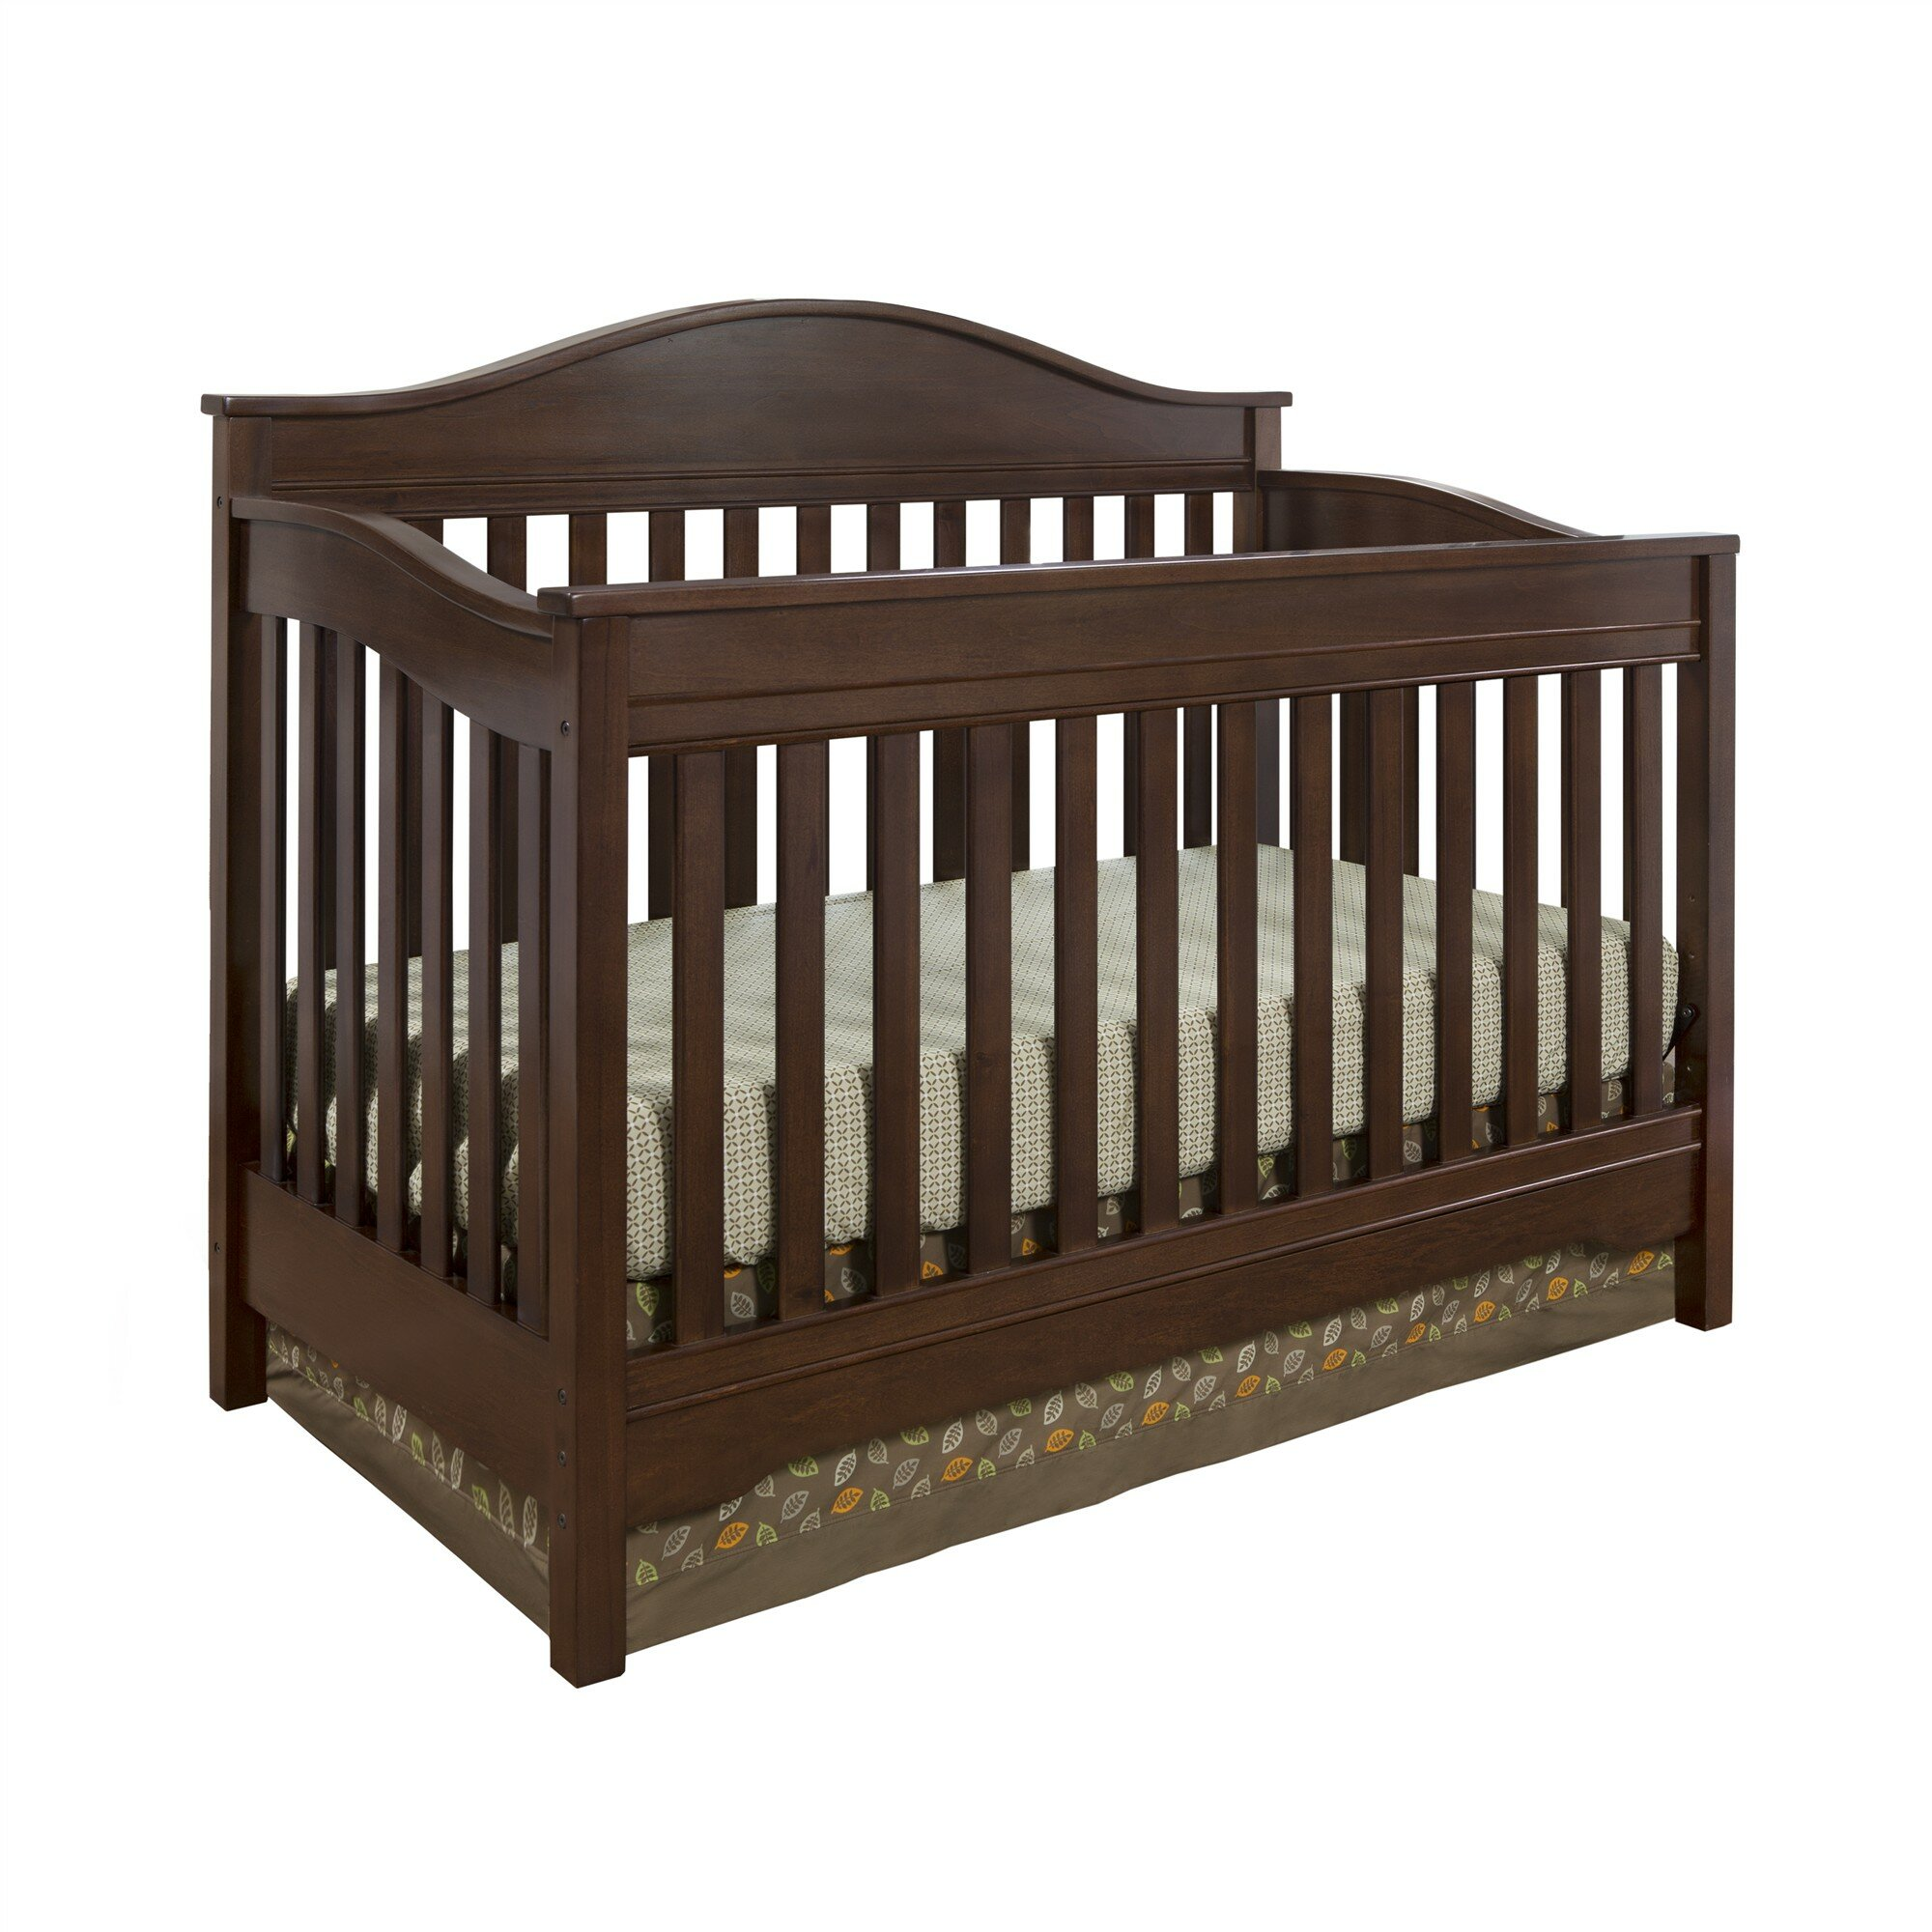 Baby Relax Eddie Bauer Langley 3 In 1 Convertible Crib